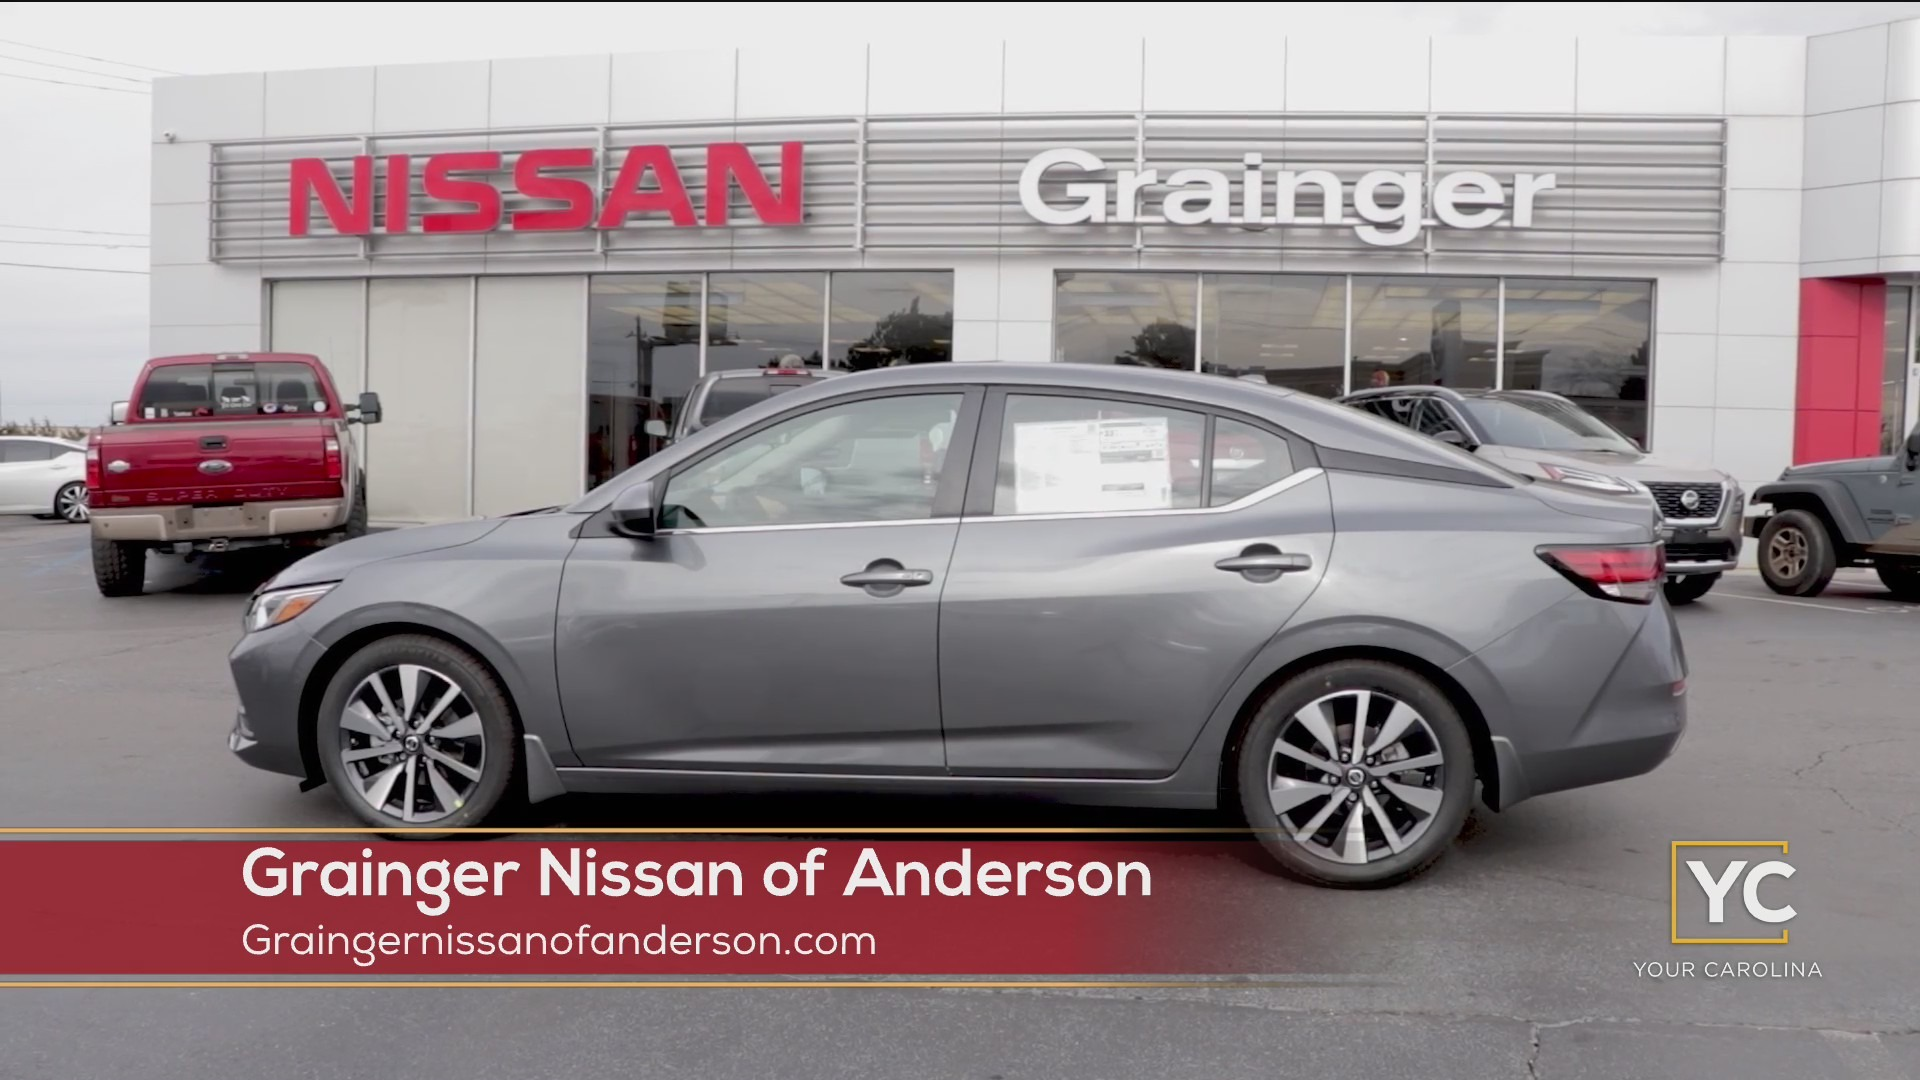 Grainger Nissan of Anderson - Finding The Right Car